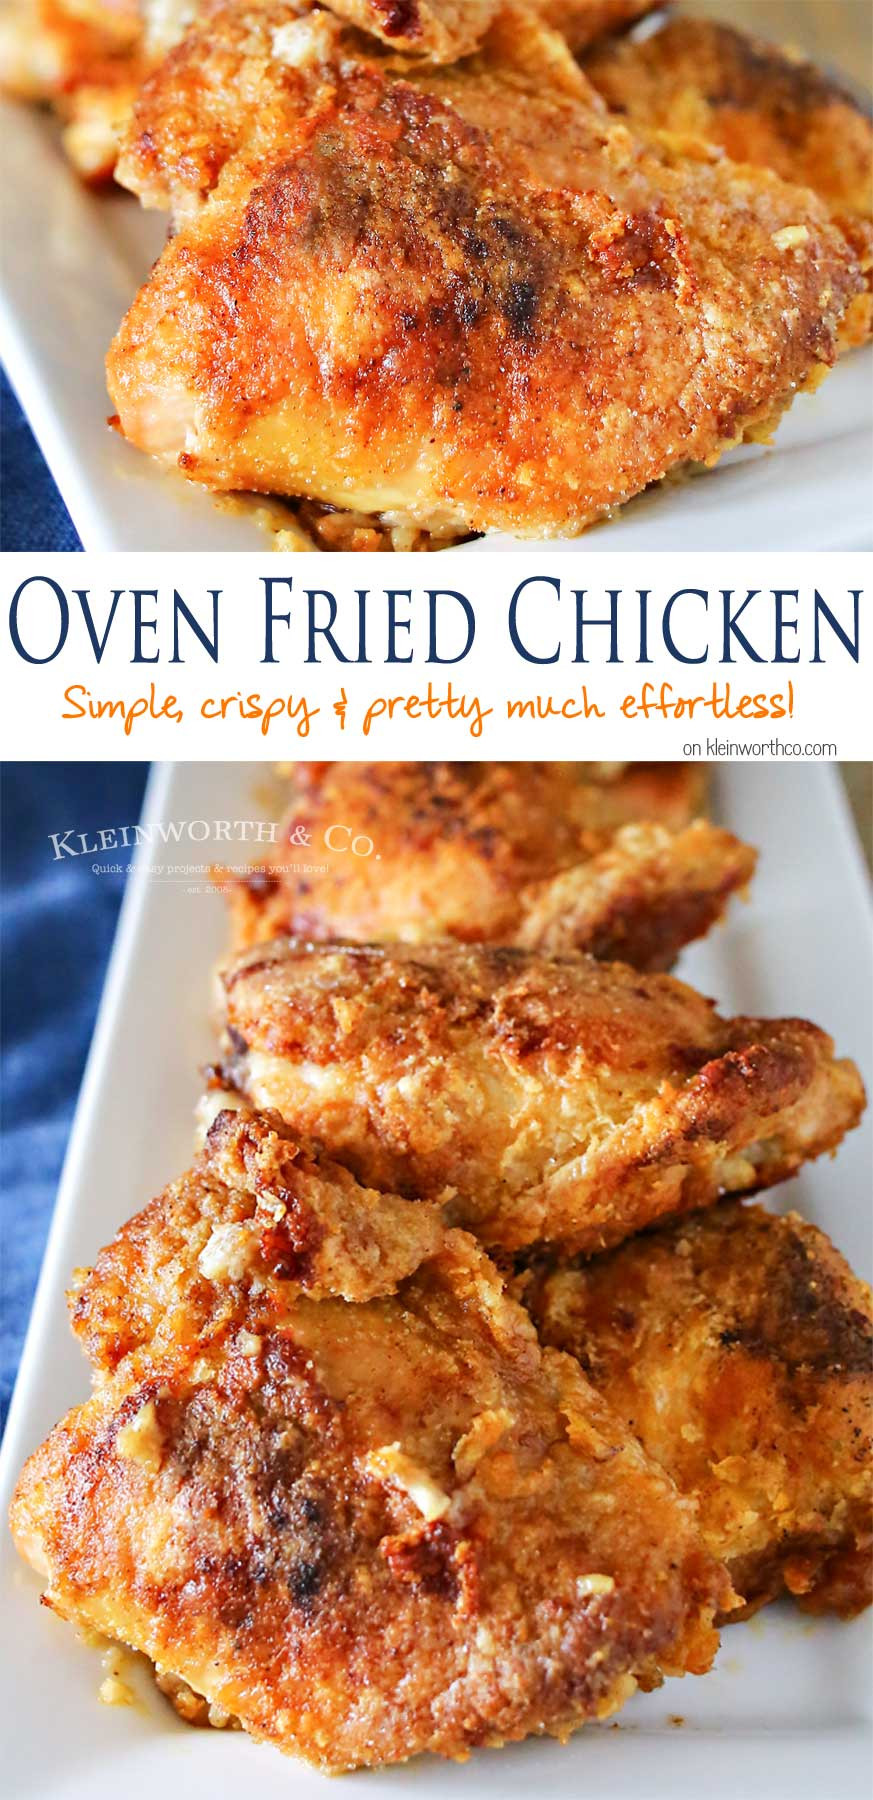 Recipe For Oven Fried Chicken  Oven Fried Chicken Kleinworth & Co